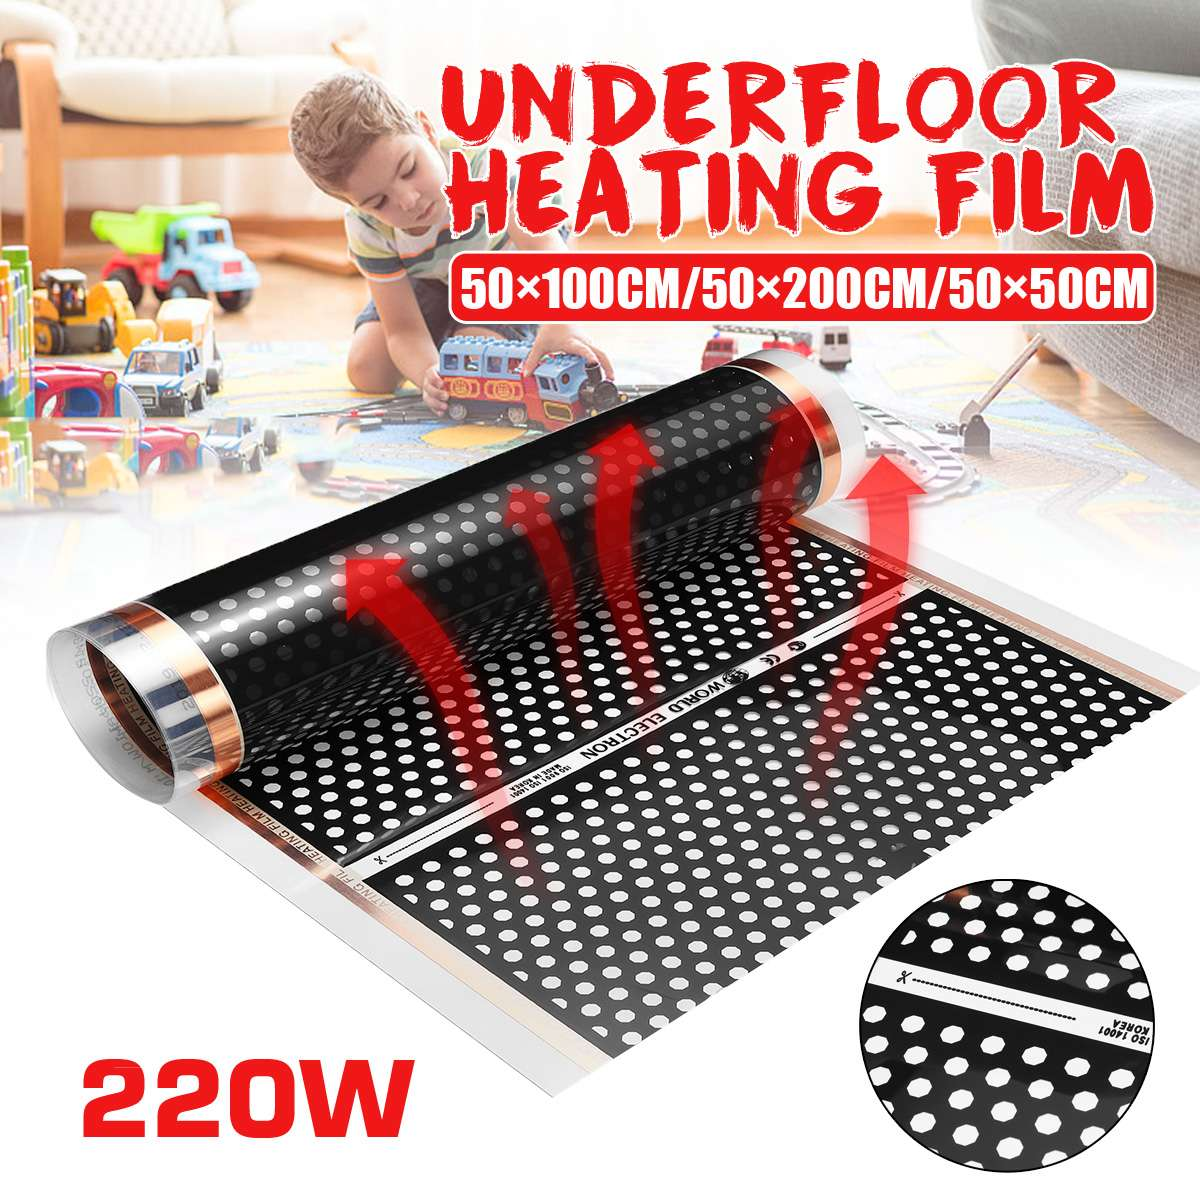 50cm Electric Floor Heating Film Underfloor Infrared Heater Floor Warmer Warm Mat Laminate / Solid Flooring Heating System